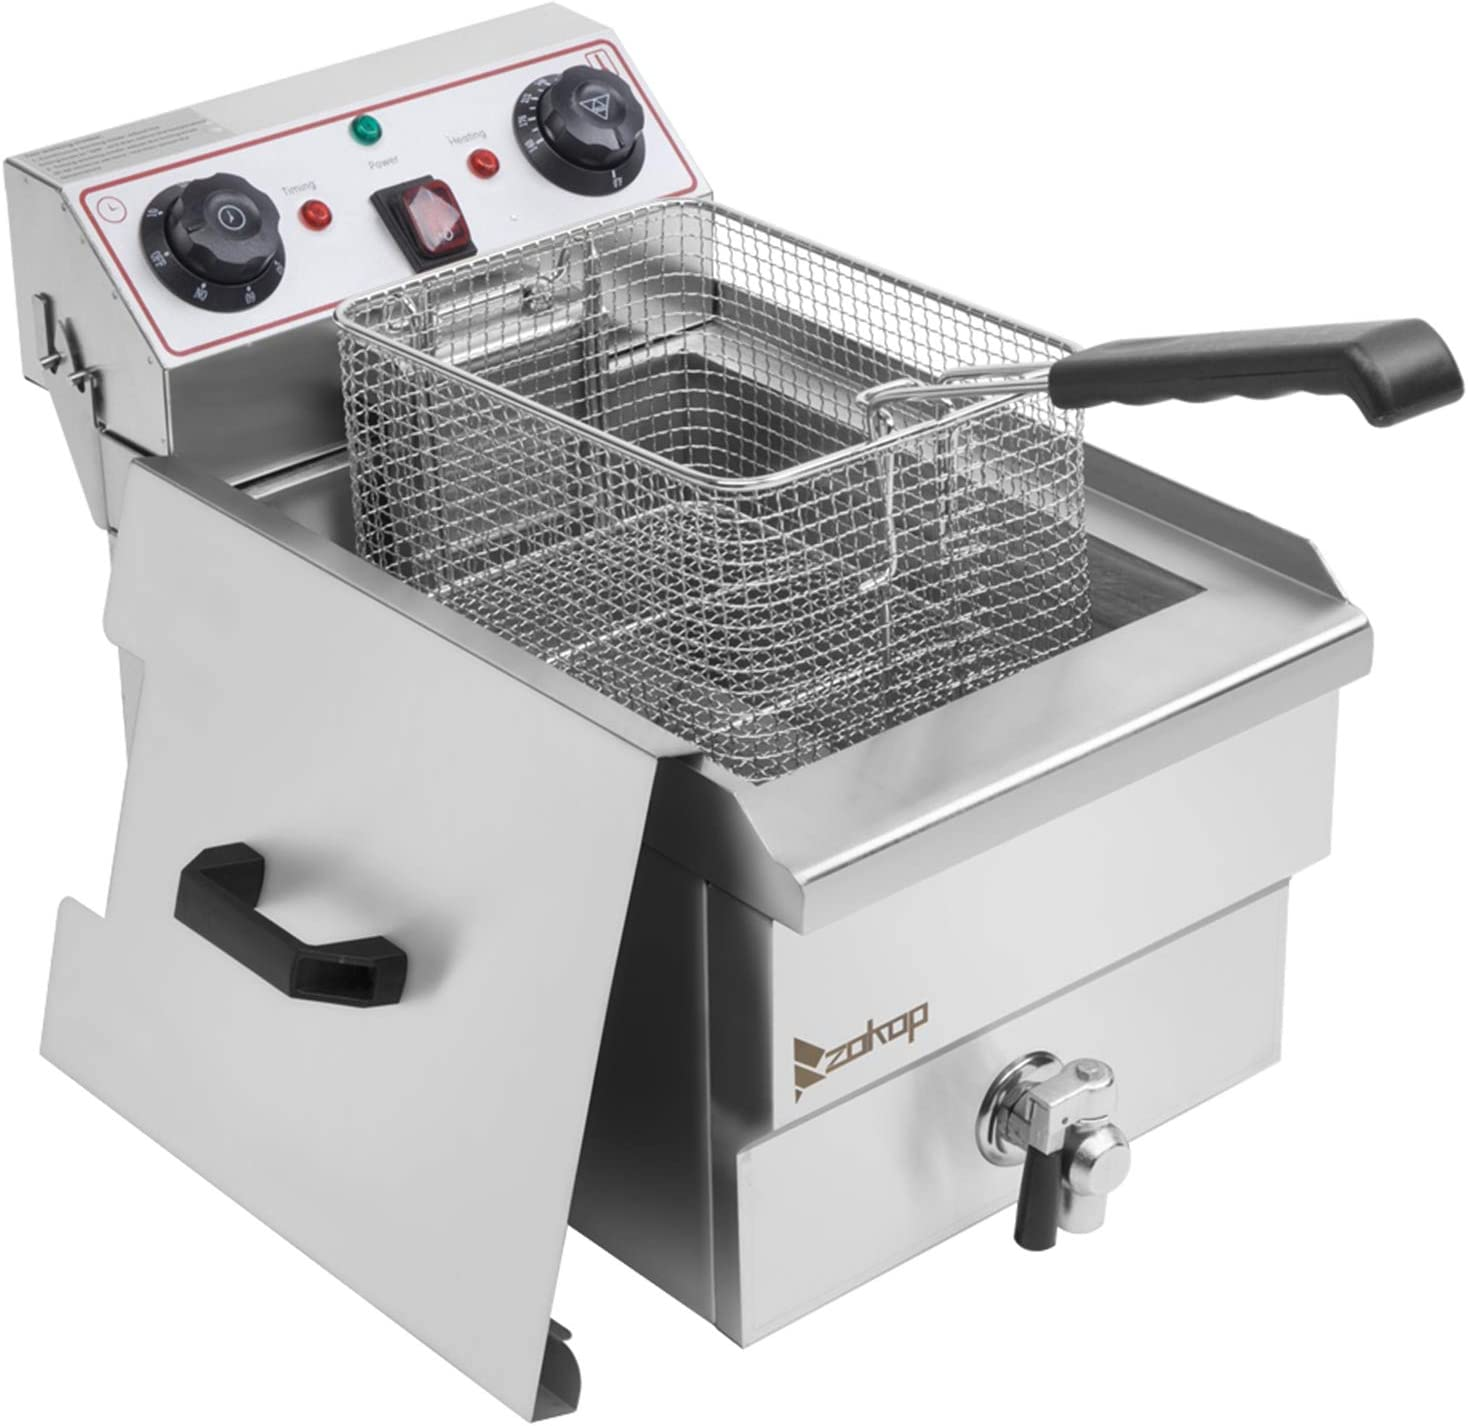 ZOKOP 12.5 QT Butterball Electric Turkey Fryer,Stainless Steel Faucet Single Tank Deep Fryer with Removable Baskets and Thermostats,Silver